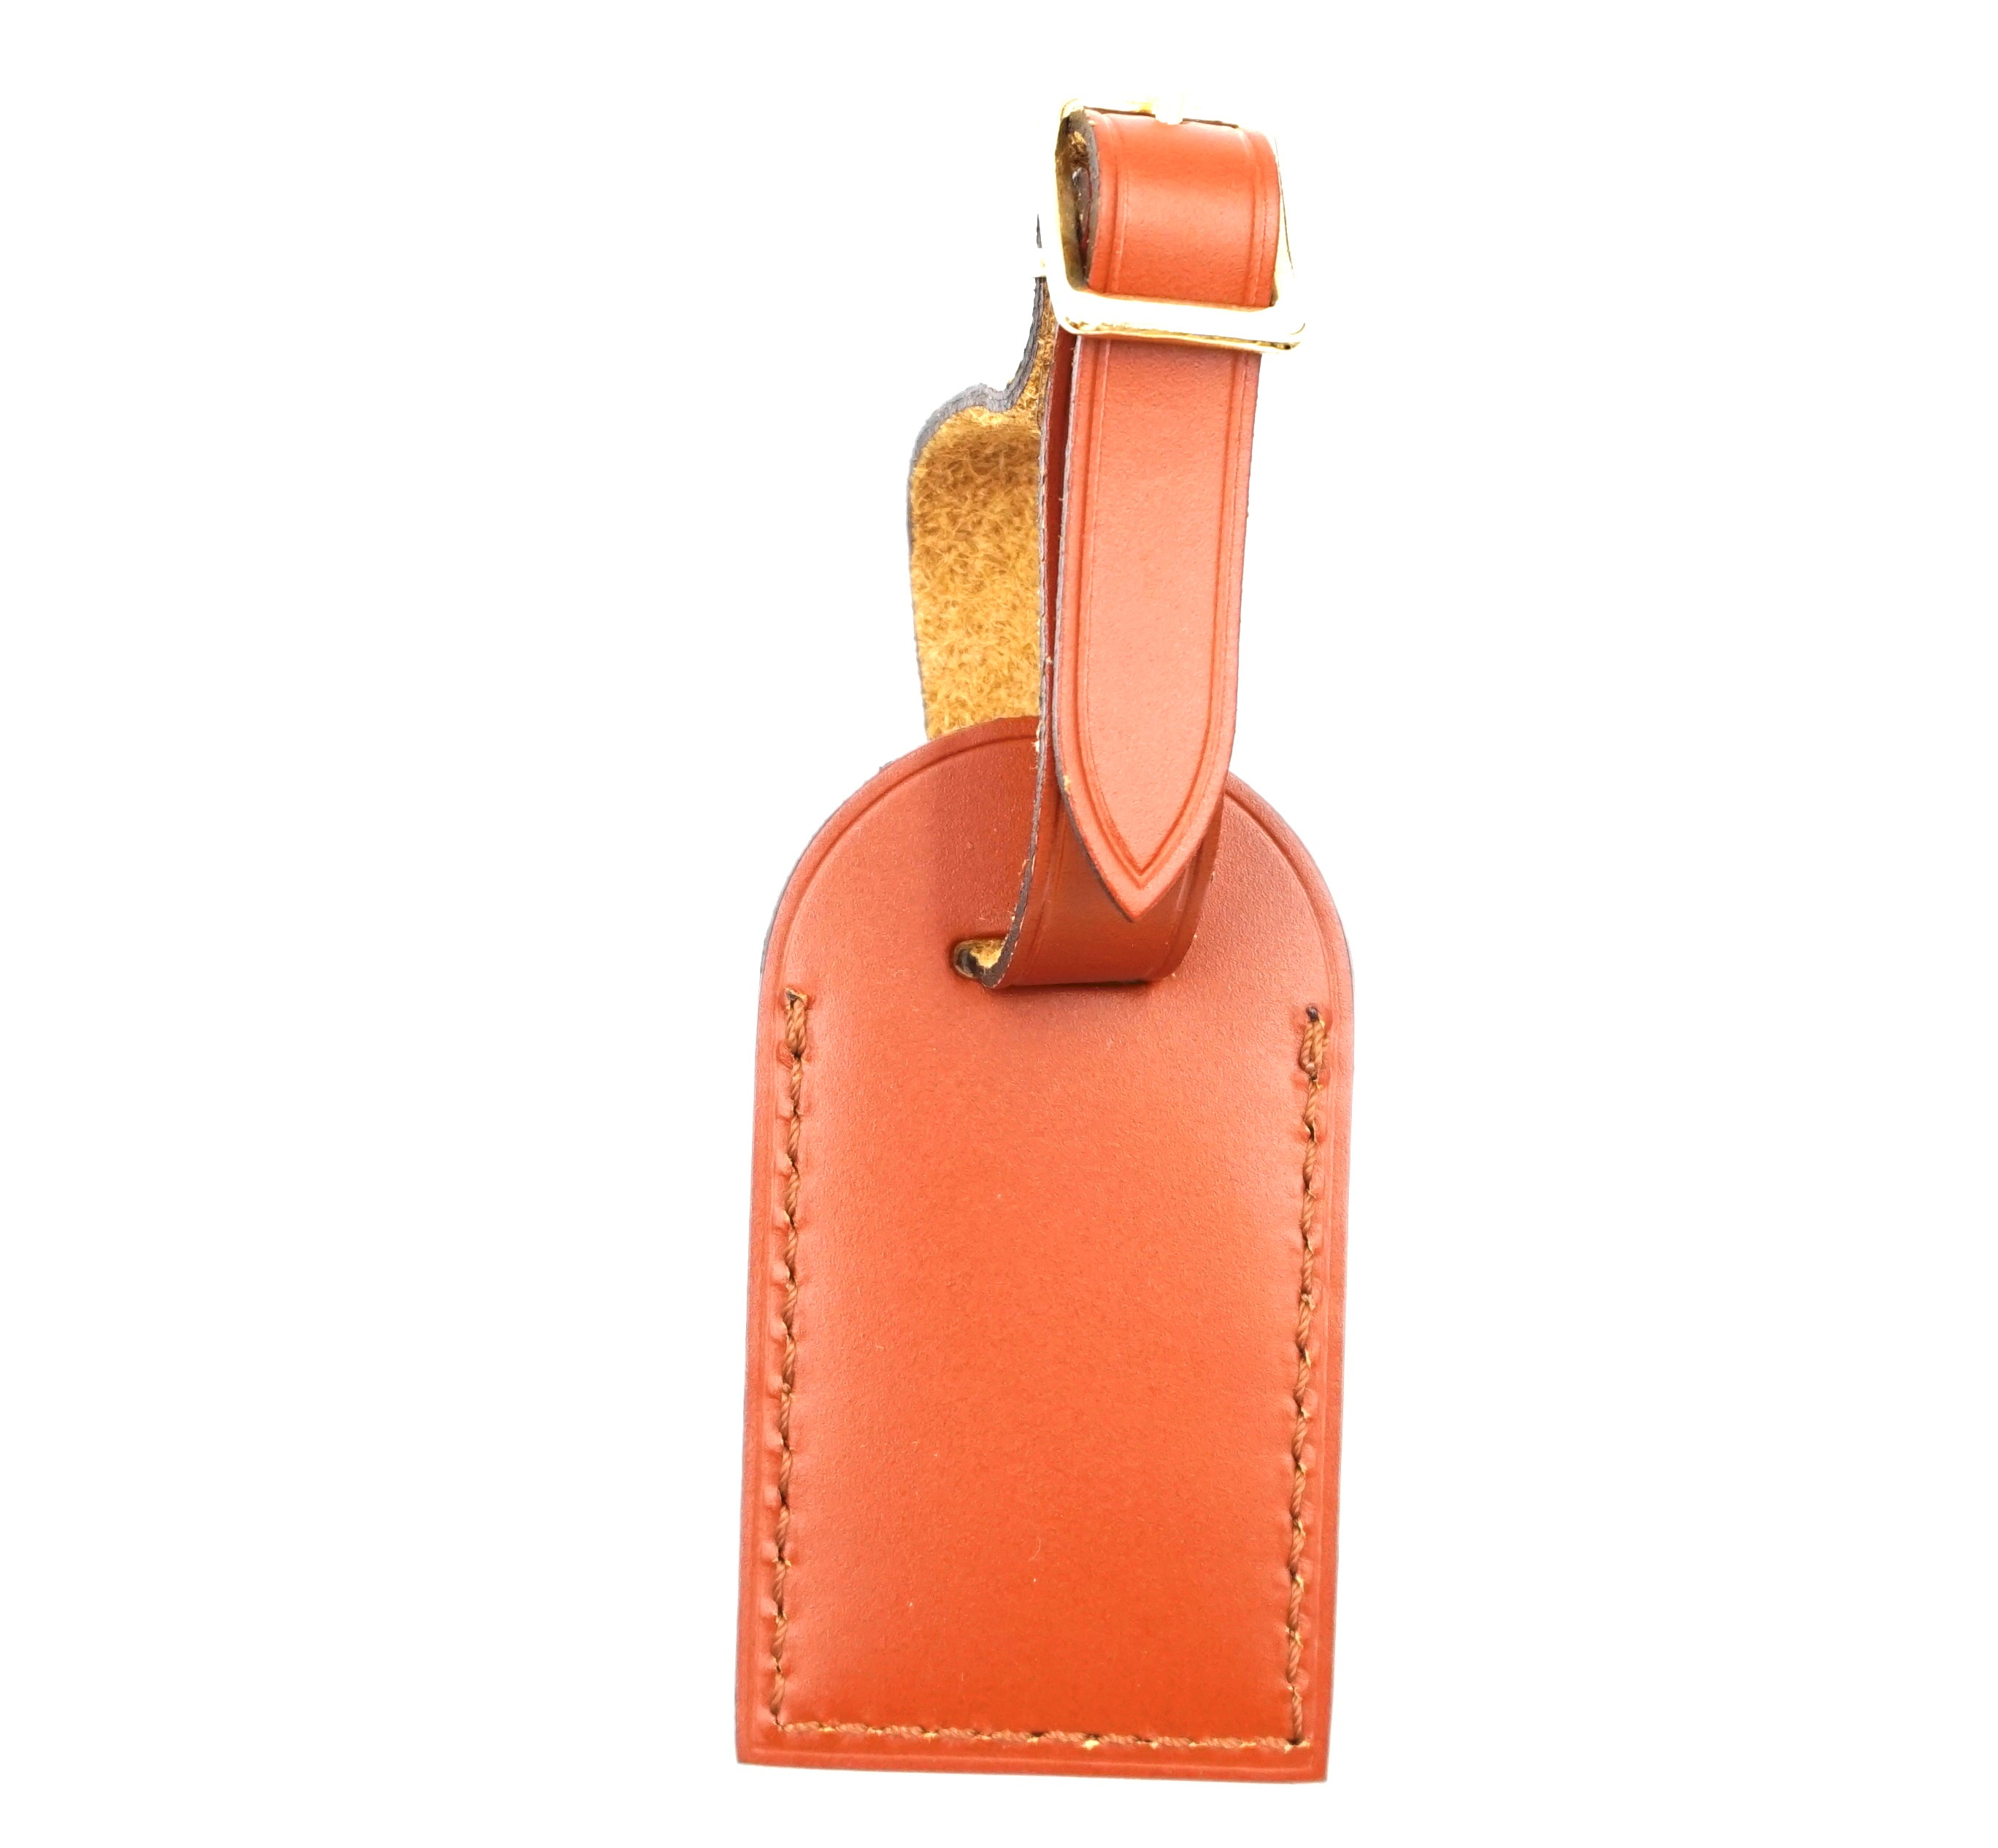 Louis Vuitton Fawn Small Smooth Calf Leather Luggage Tag